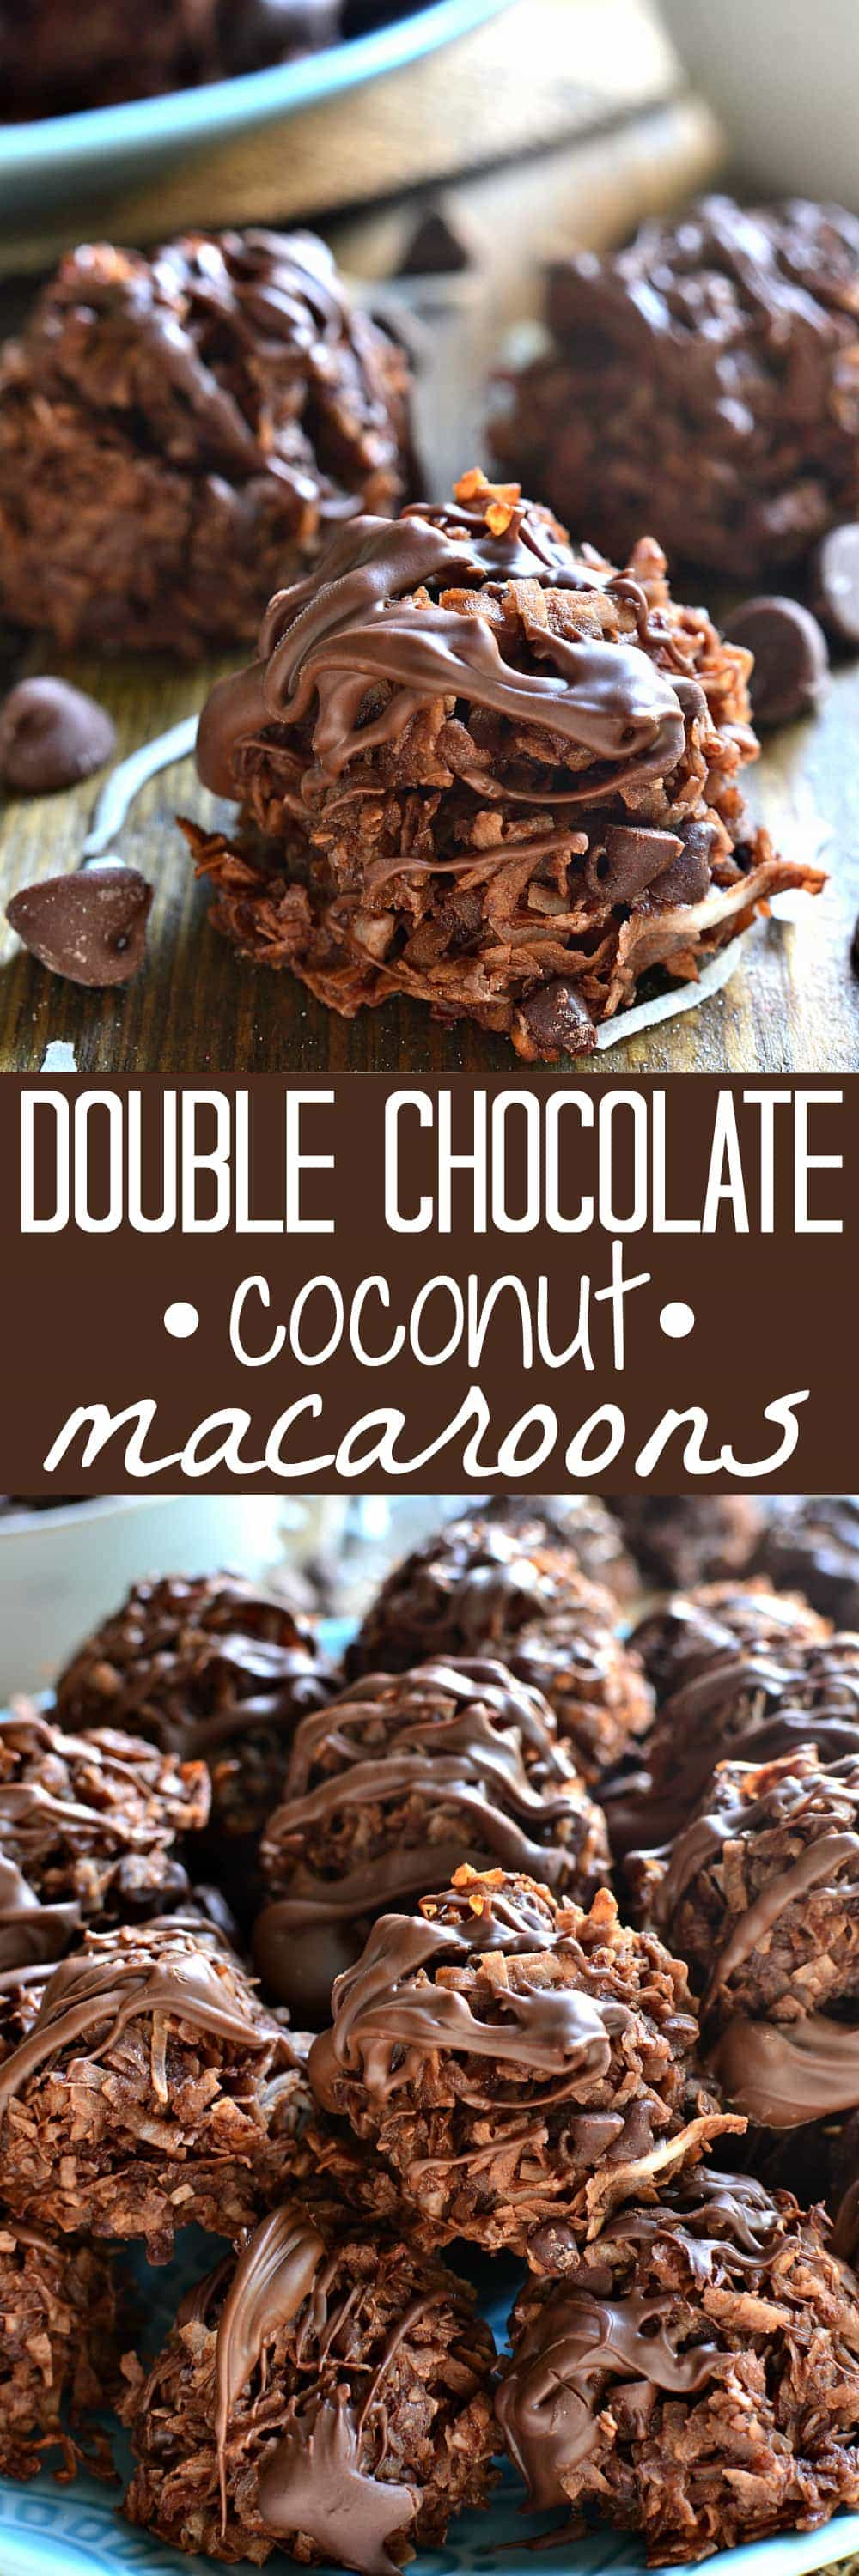 Double Chocolate Coconut Macaroons are loaded with rich chocolatey flavor and sinfully delicious coconut - the perfect twist on a classic! Don't miss these!